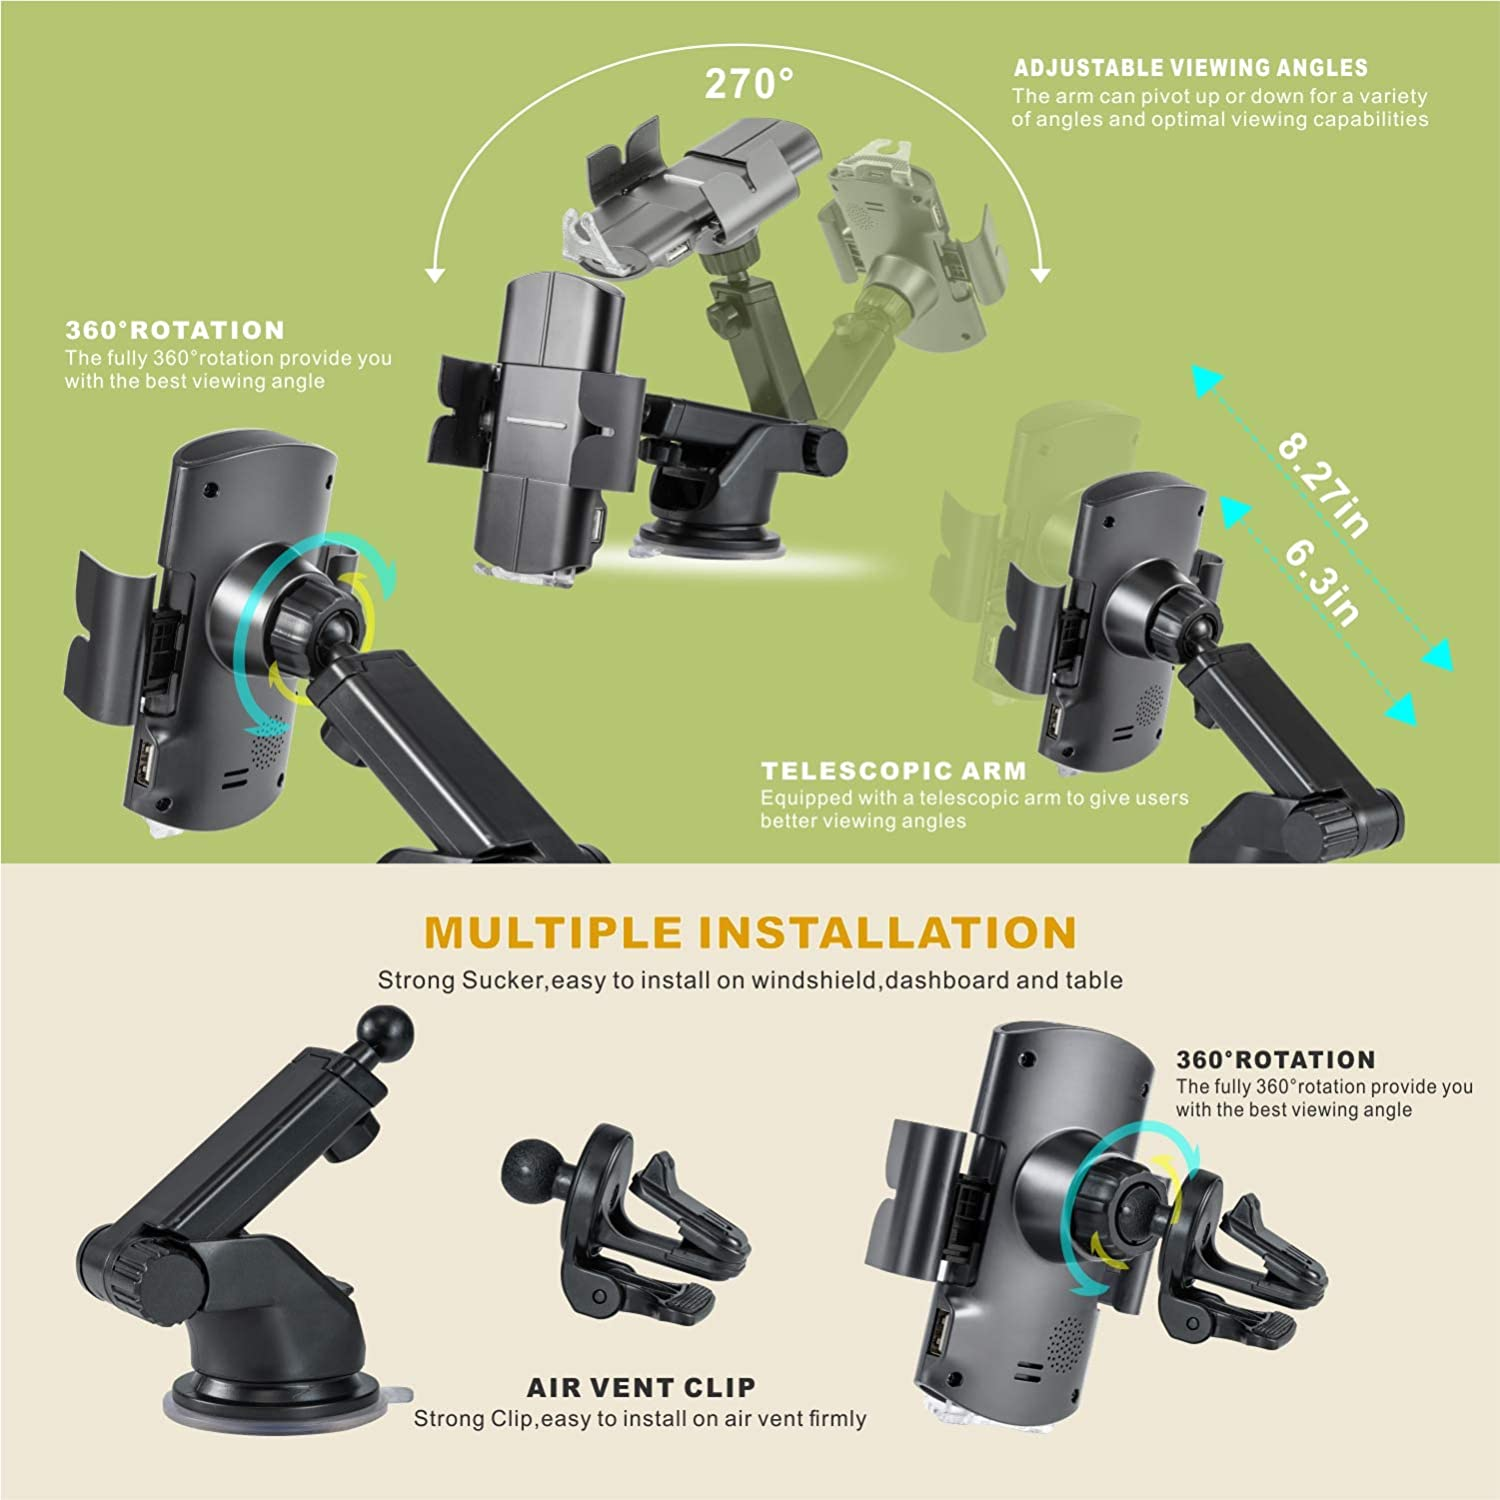 Samsung S10-S8 10W Qi Fasting Charging Auto-Clamping 3 in 1 Car Mount Windshield Dashboard Air Vent Phone Holder for iPhone 11-Pro Max X-Xs Max 8//8+ TILON Voice Prompts Wireless Car Charger